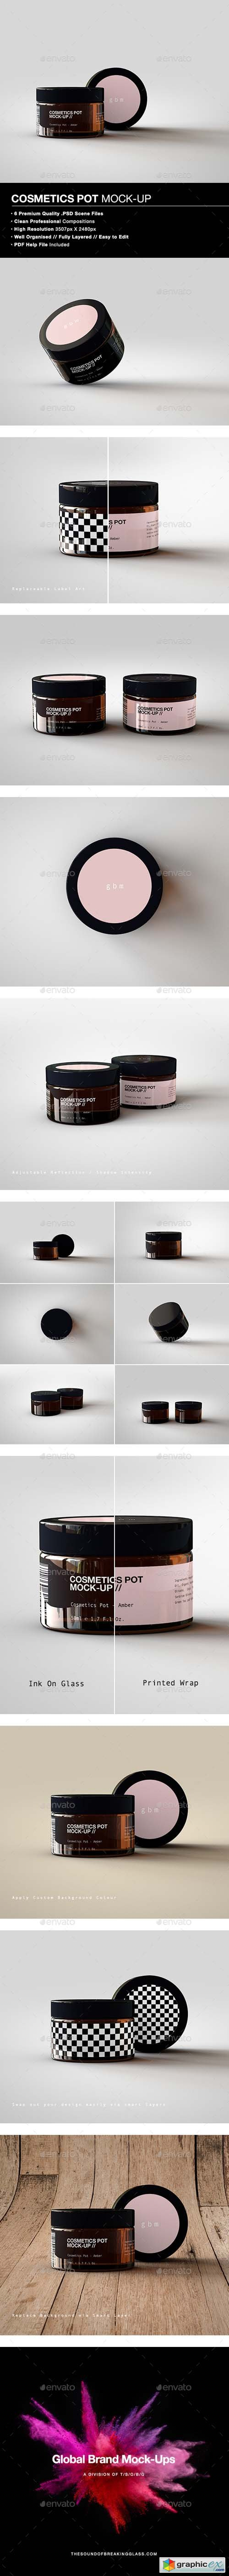 Cosmetic Pot Mock-Up 1